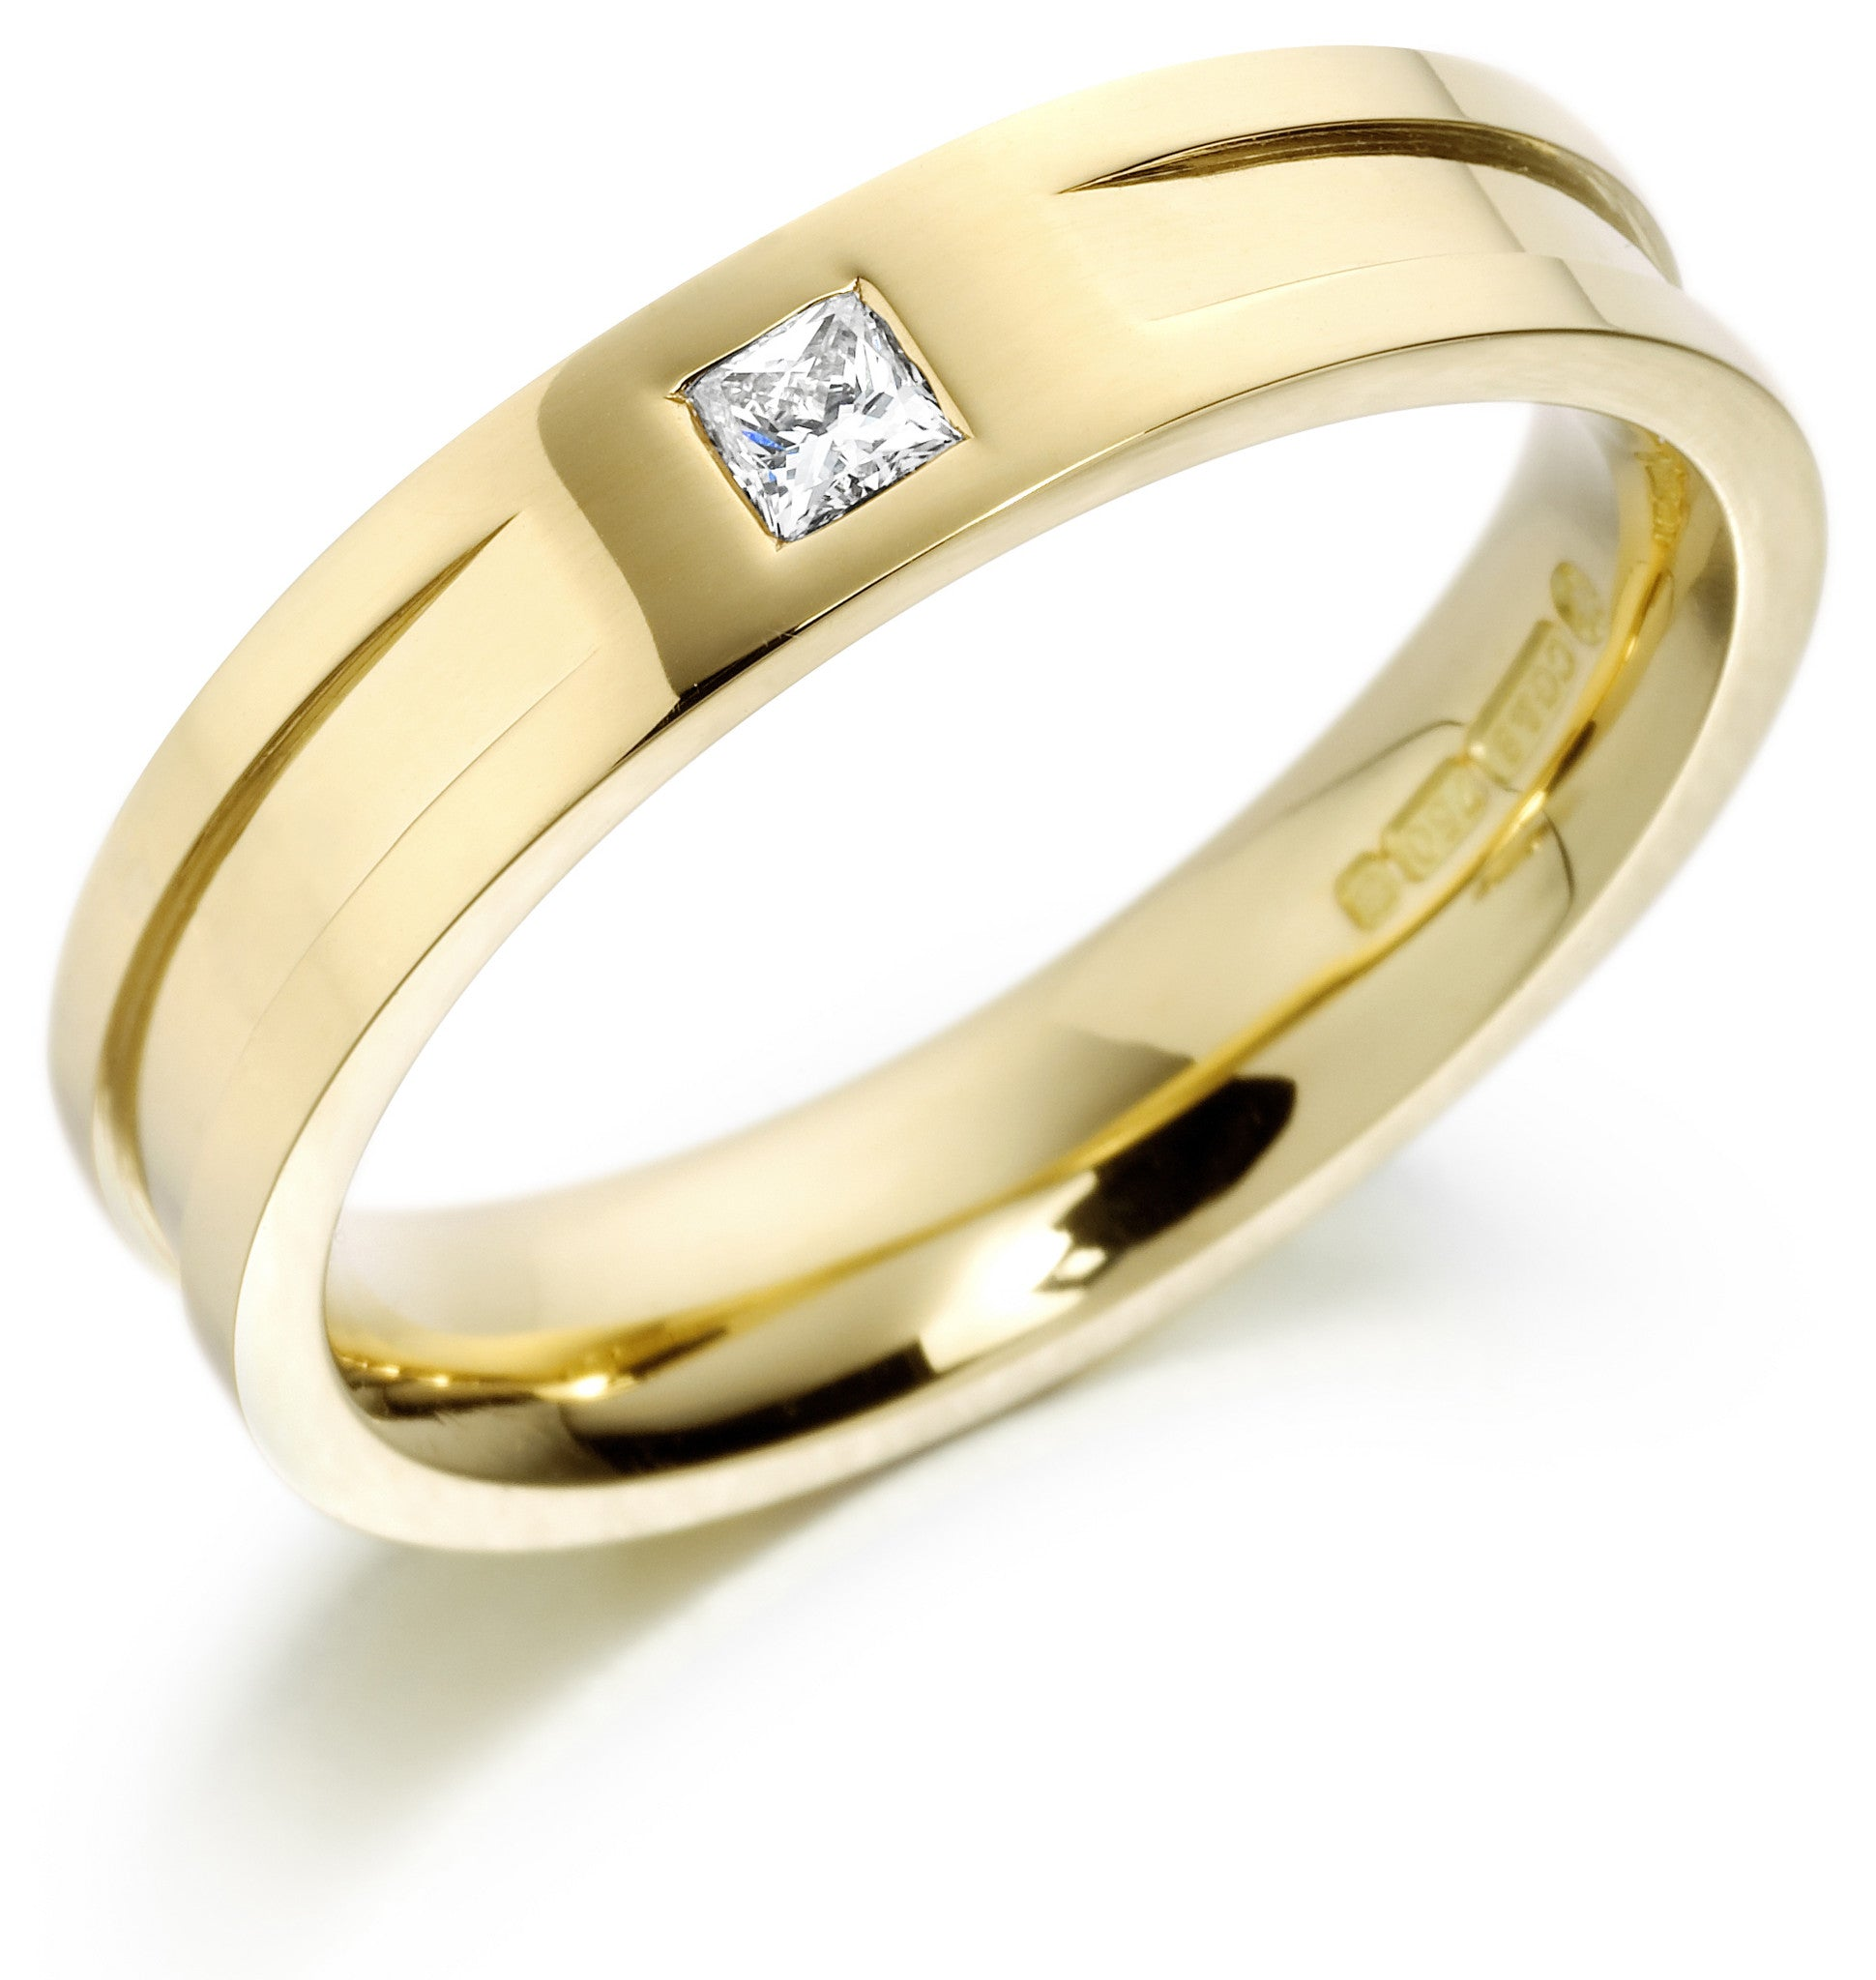 Charles Green Diamond Set Ridge Wedding Ring